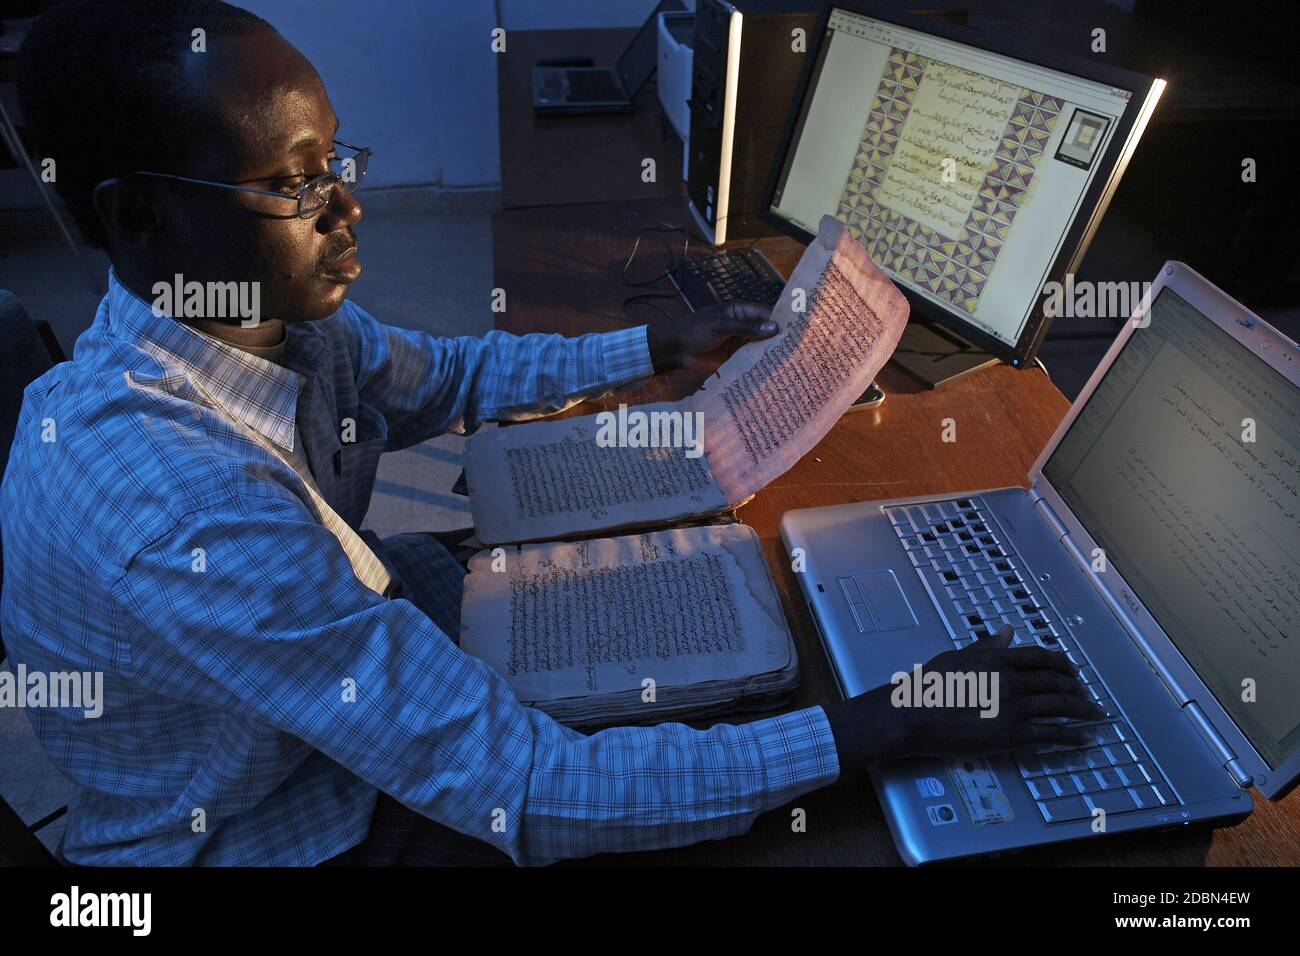 Ahmed-Baba-Institute The manuscrips getting digitalised.It can take as long as 45 days to copy a large document.Timbuktu, Mali, West Africa Stock Photo